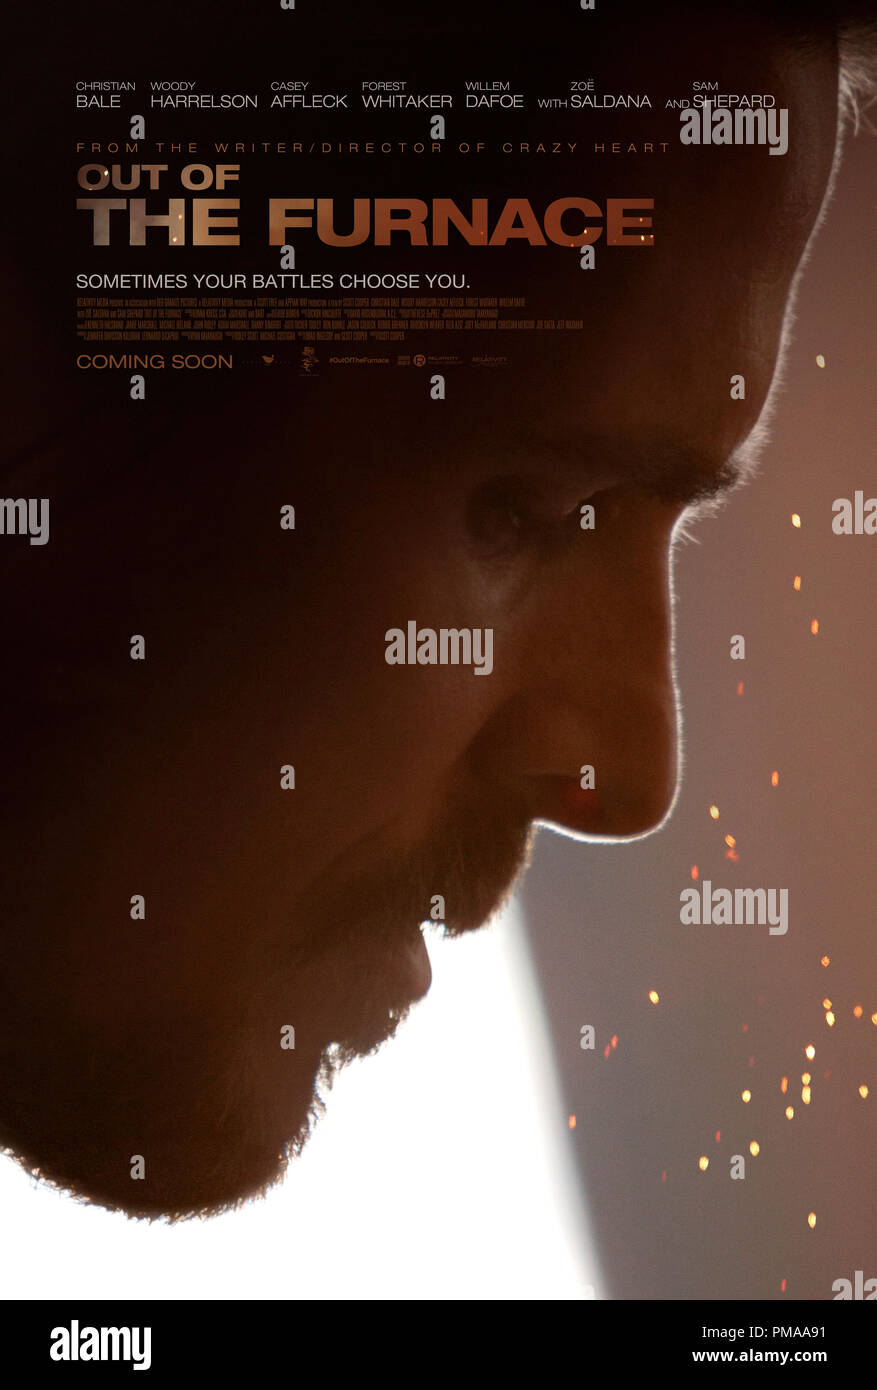 Relativity Media's 'Out of the Furnace' Poster - Stock Image